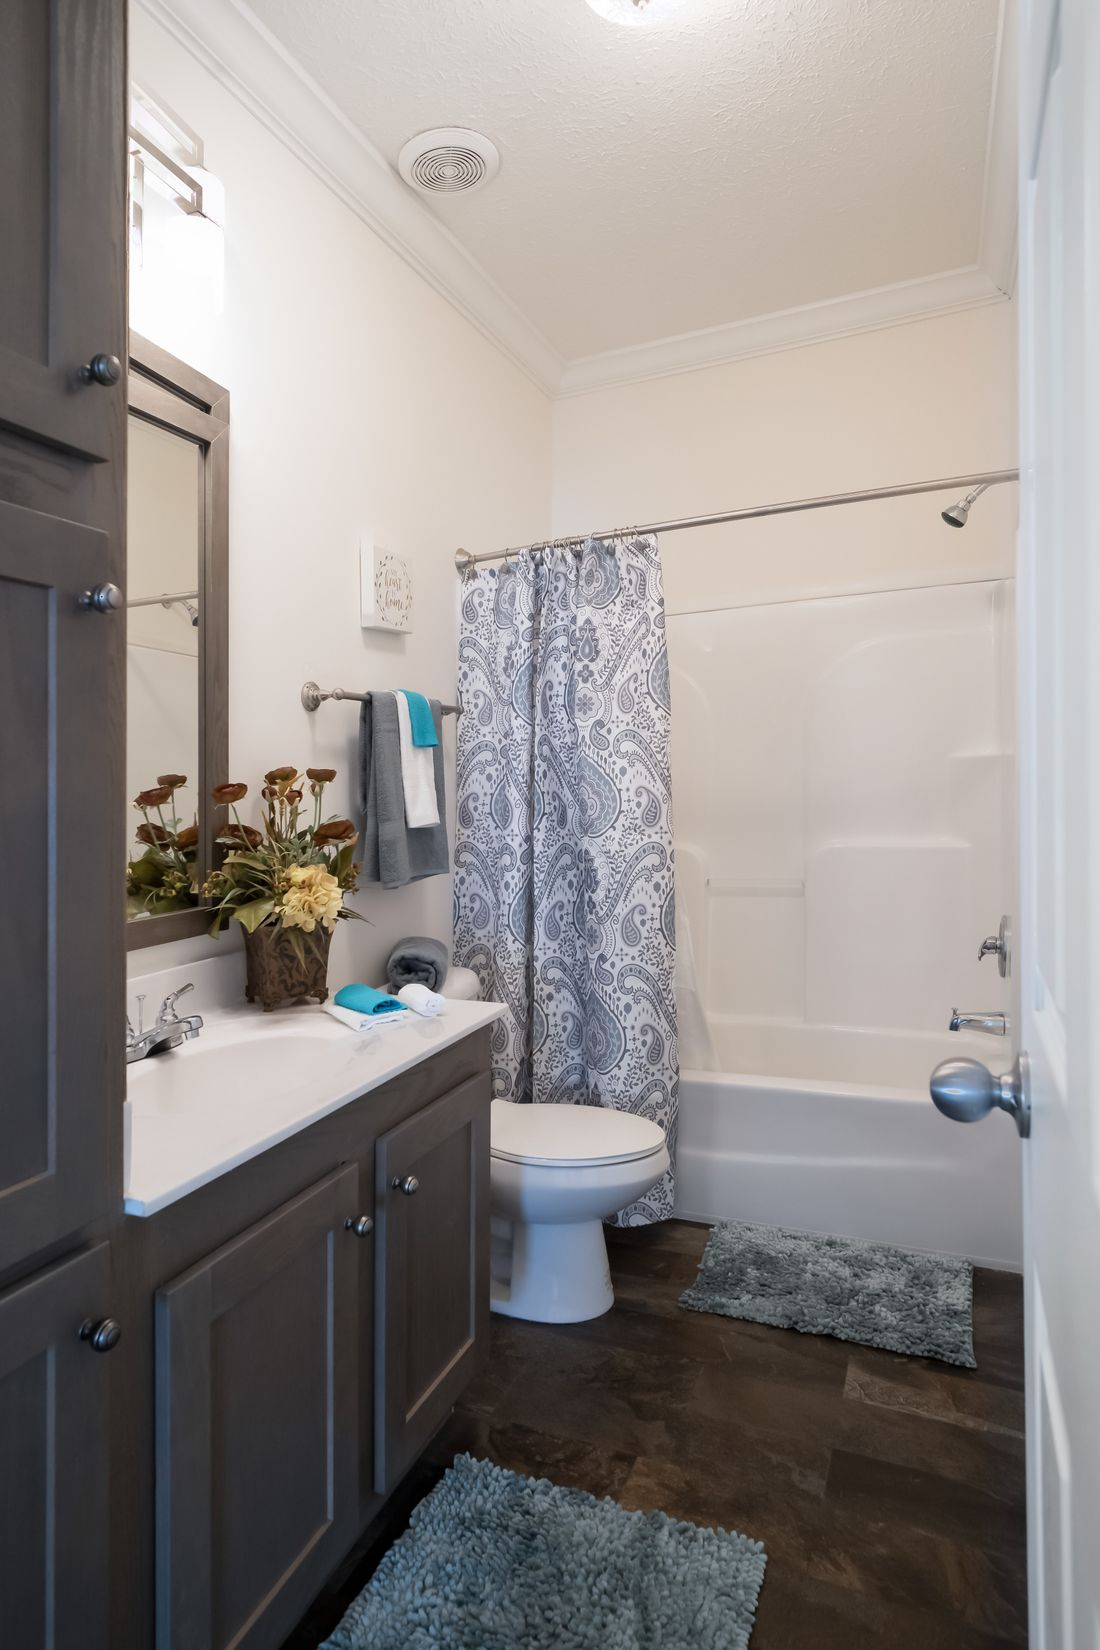 The 2097 HERITAGE Guest Bathroom. This Manufactured Mobile Home features 4 bedrooms and 2 baths.